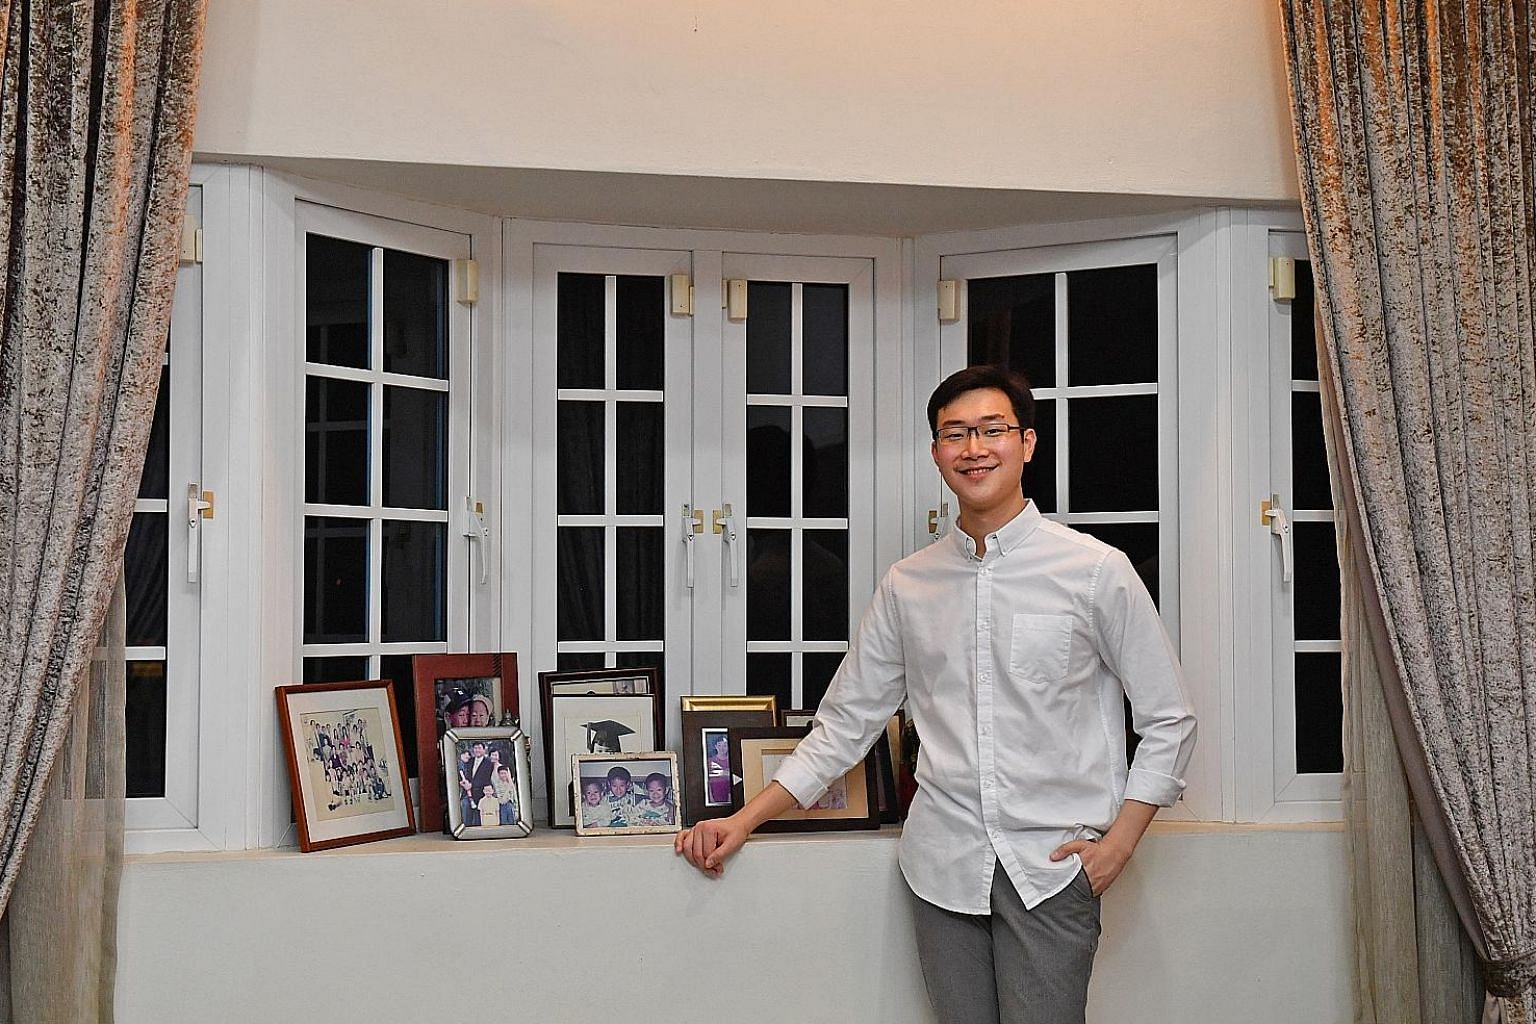 Mr Daniel Lim says his biggest mistake was waiting till he started working to begin financial planning. This means he has a lot of catching up to do.